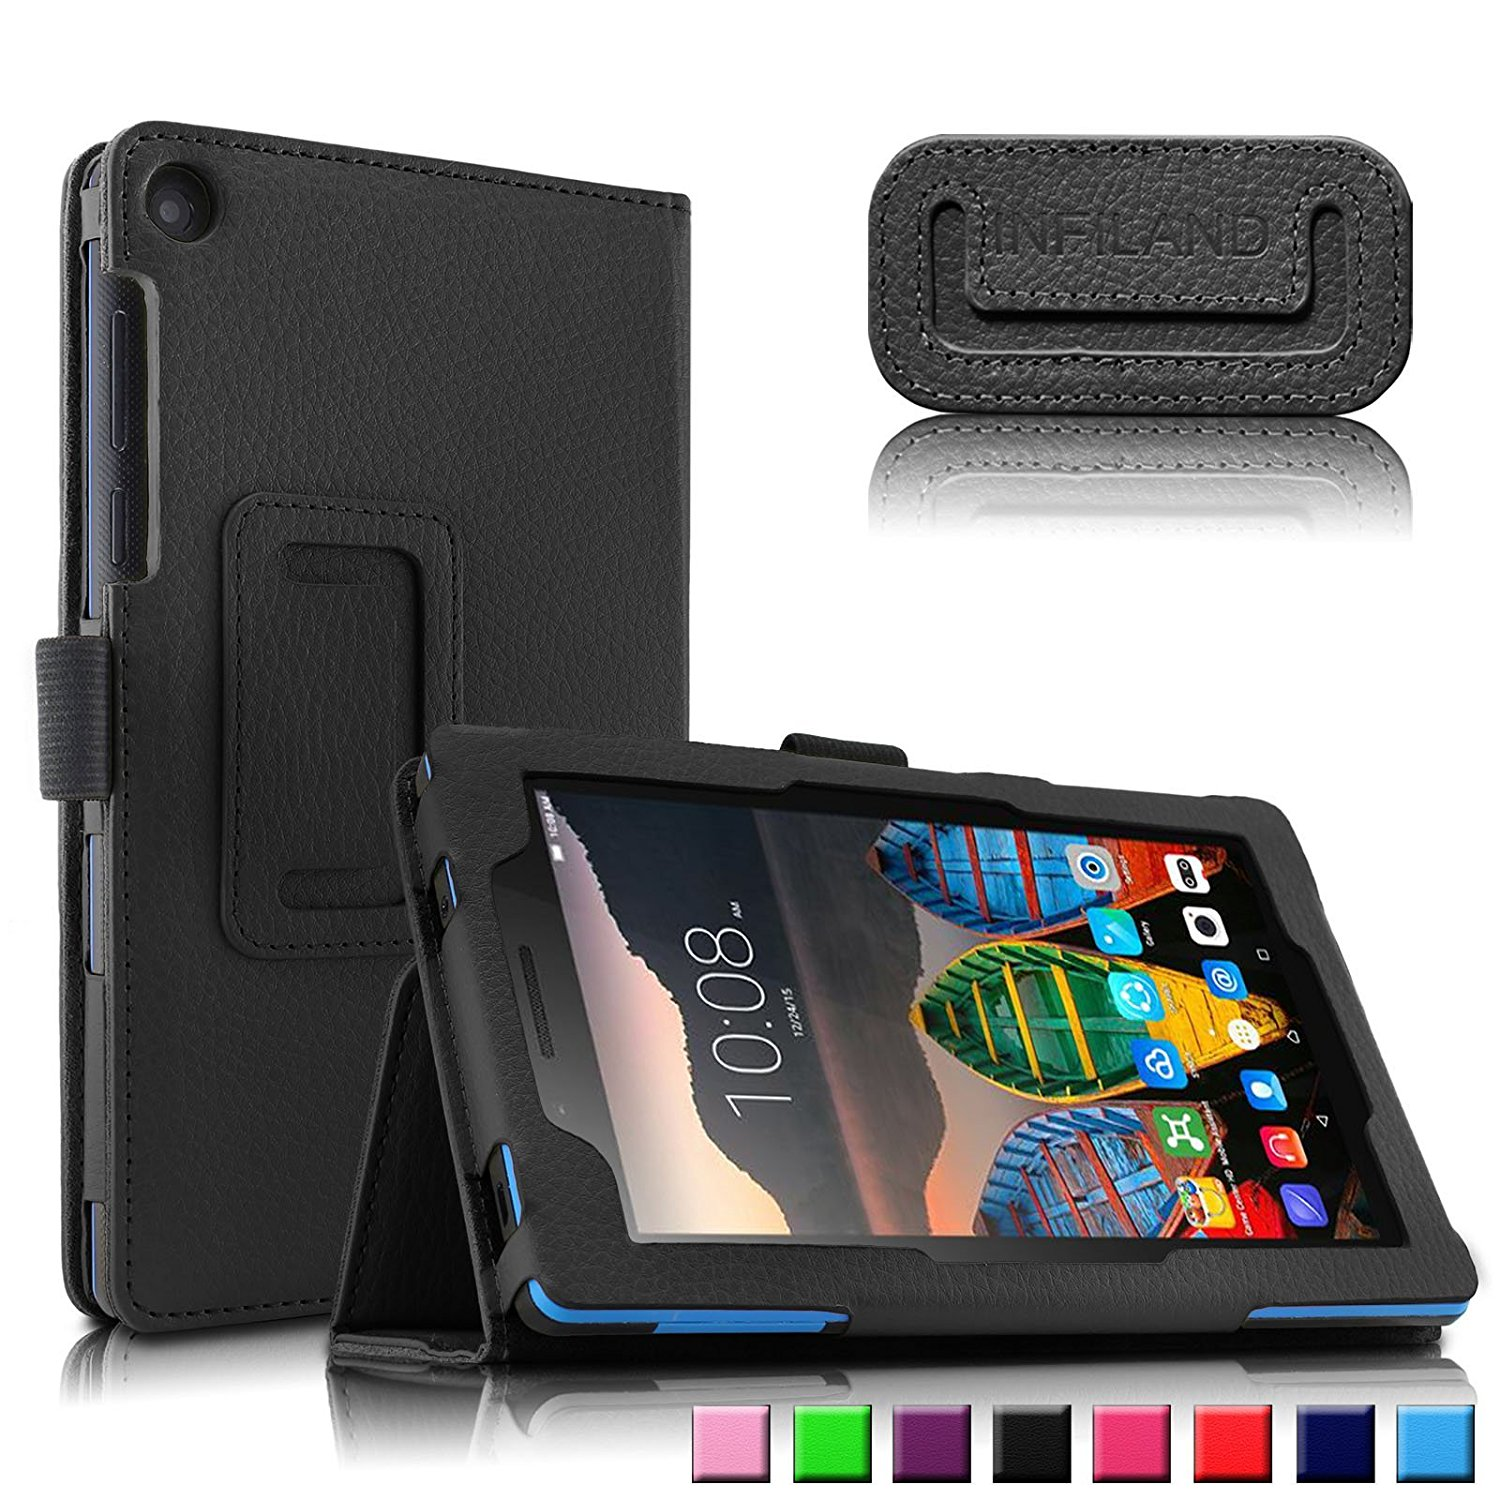 Cover for Lenovo Tab3 7 Essential 710F 7.0 Tablet Case Flip PU Leather Case Protective Shell Case for Tab3 710i Funda Case new slim folio bracket for lenovo a7 20f standing tablet cover for lenovo tab 2 a7 20 flip protective tablet case